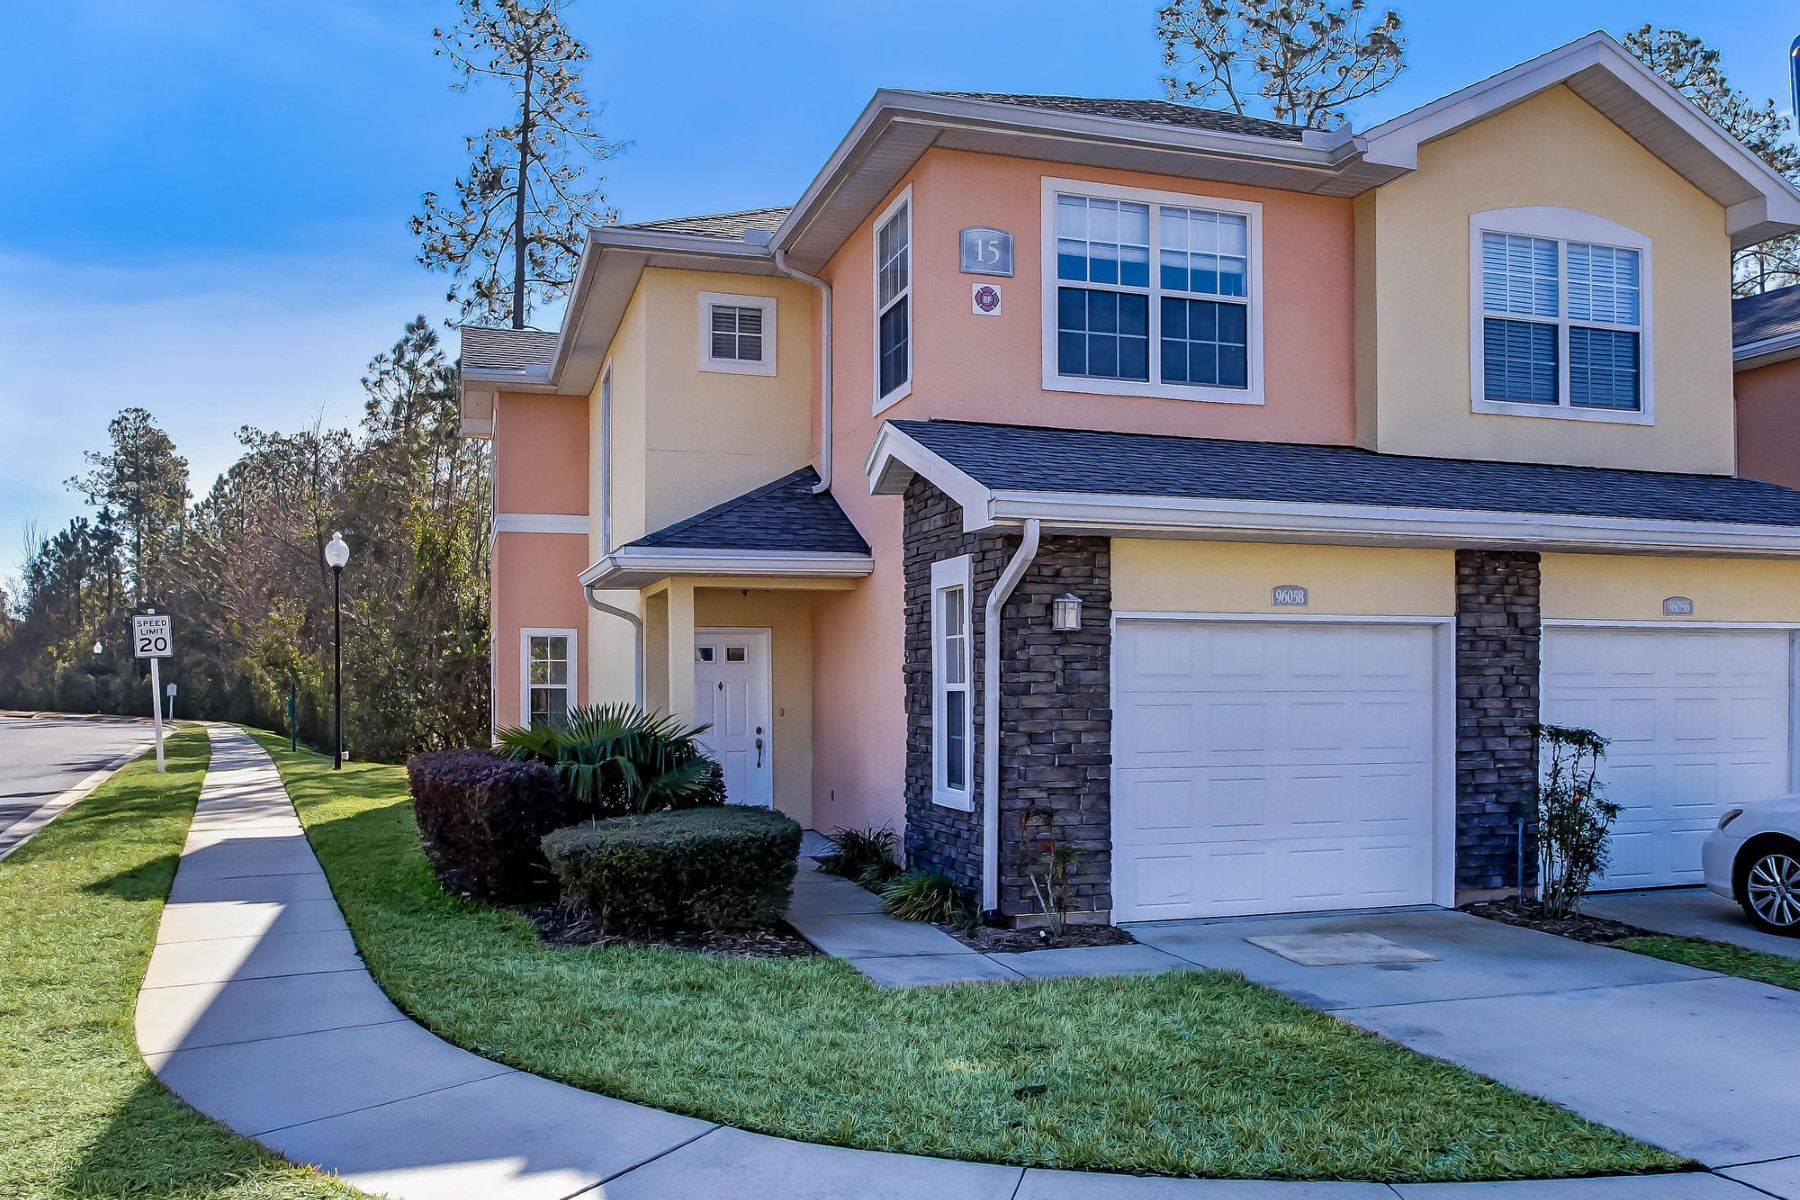 Condominium for Sale at Cottages at Stoney Creek 96058 Cottage Court Fernandina Beach, Florida 32034 United States